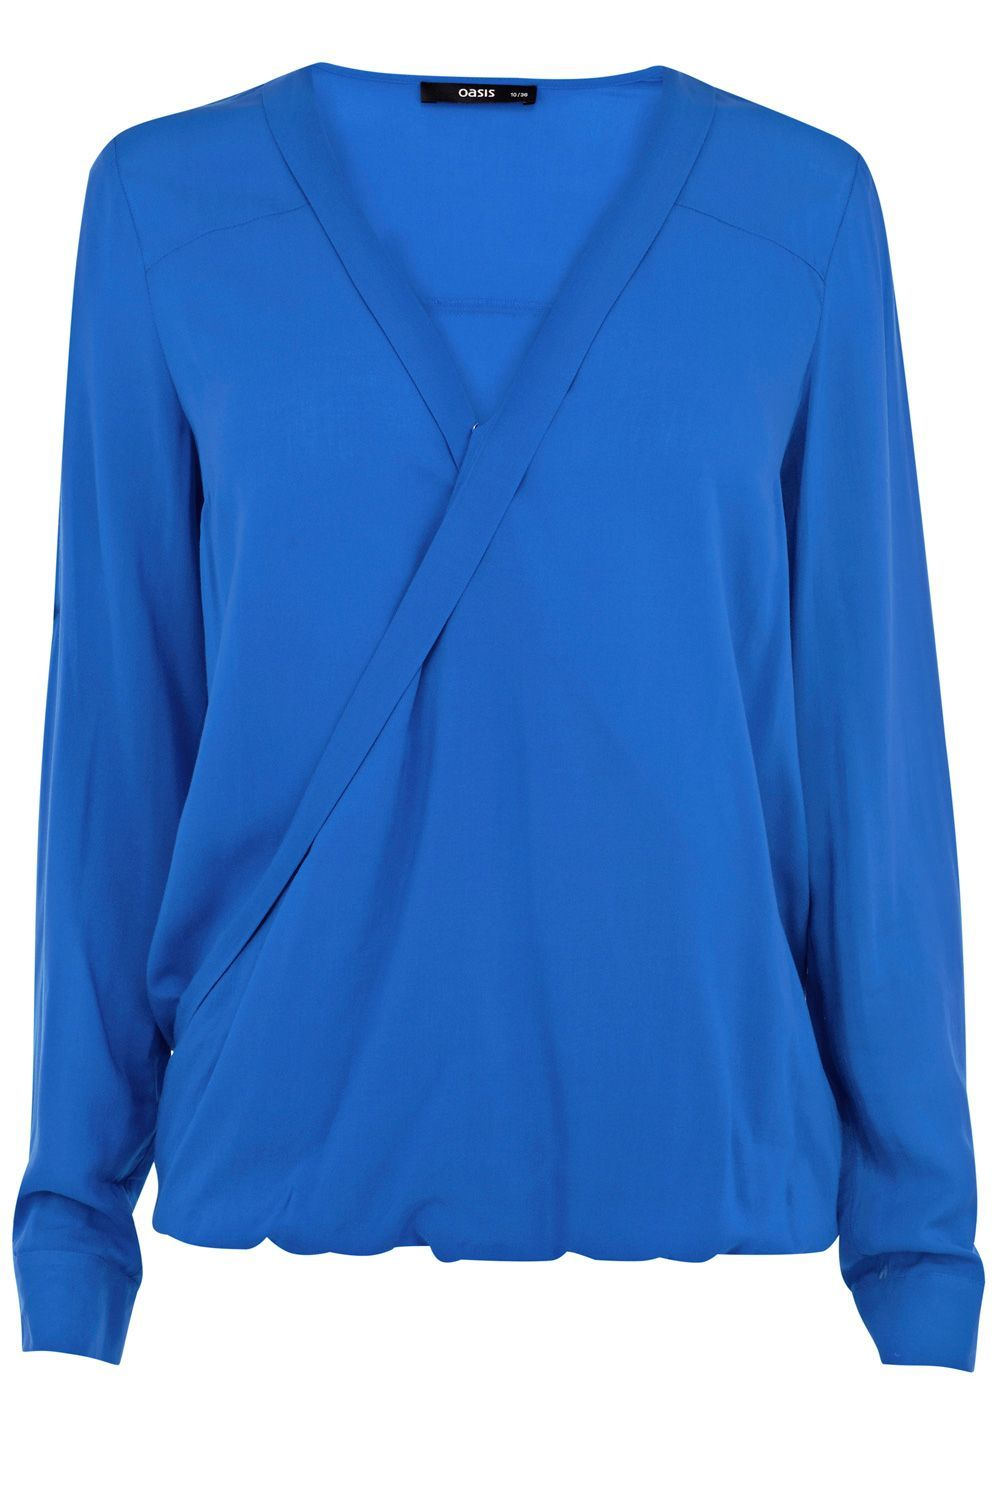 Wrap Viscose Shirt, Blue - neckline: low v-neck; pattern: plain; style: wrap/faux wrap; predominant colour: royal blue; occasions: casual, evening, work; length: standard; fibres: viscose/rayon - 100%; fit: body skimming; sleeve length: long sleeve; sleeve style: standard; texture group: silky - light; pattern type: fabric; season: s/s 2013